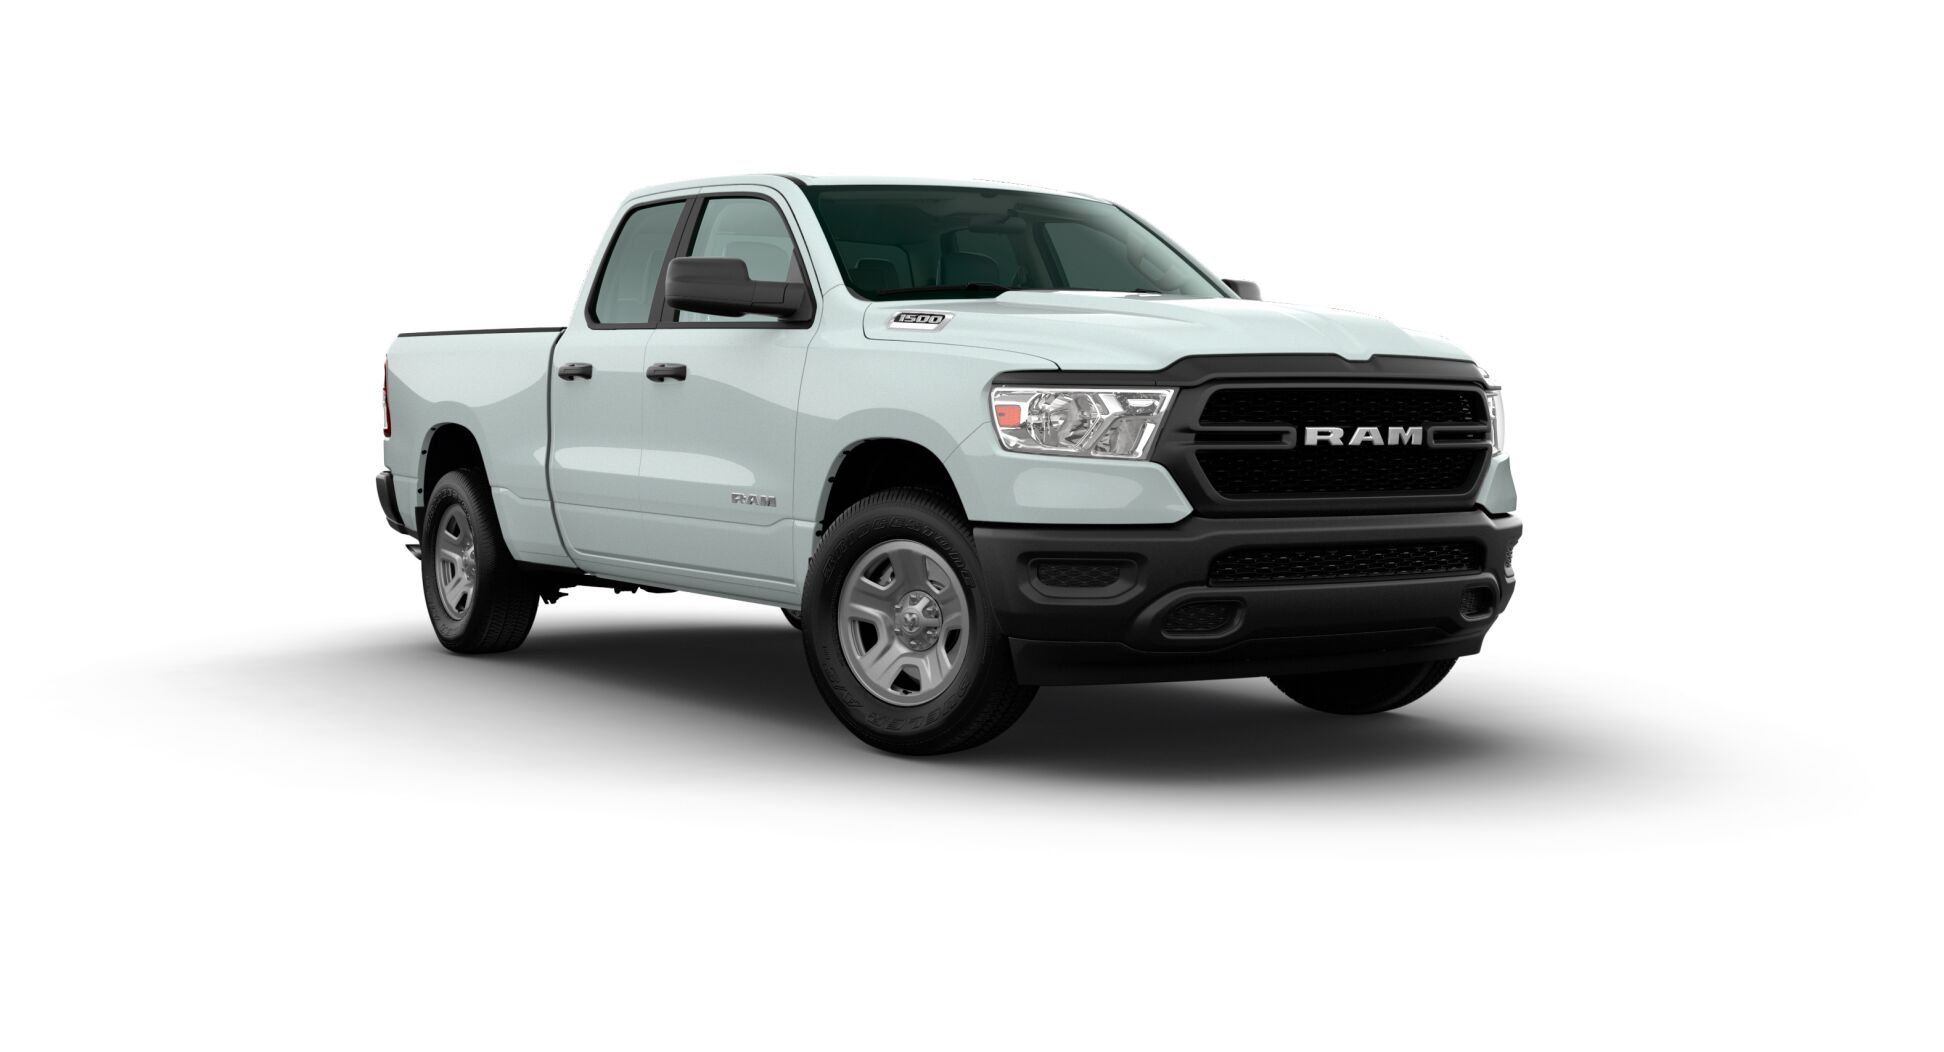 New 2020 Ram 1500 Tradesman Trim and Features